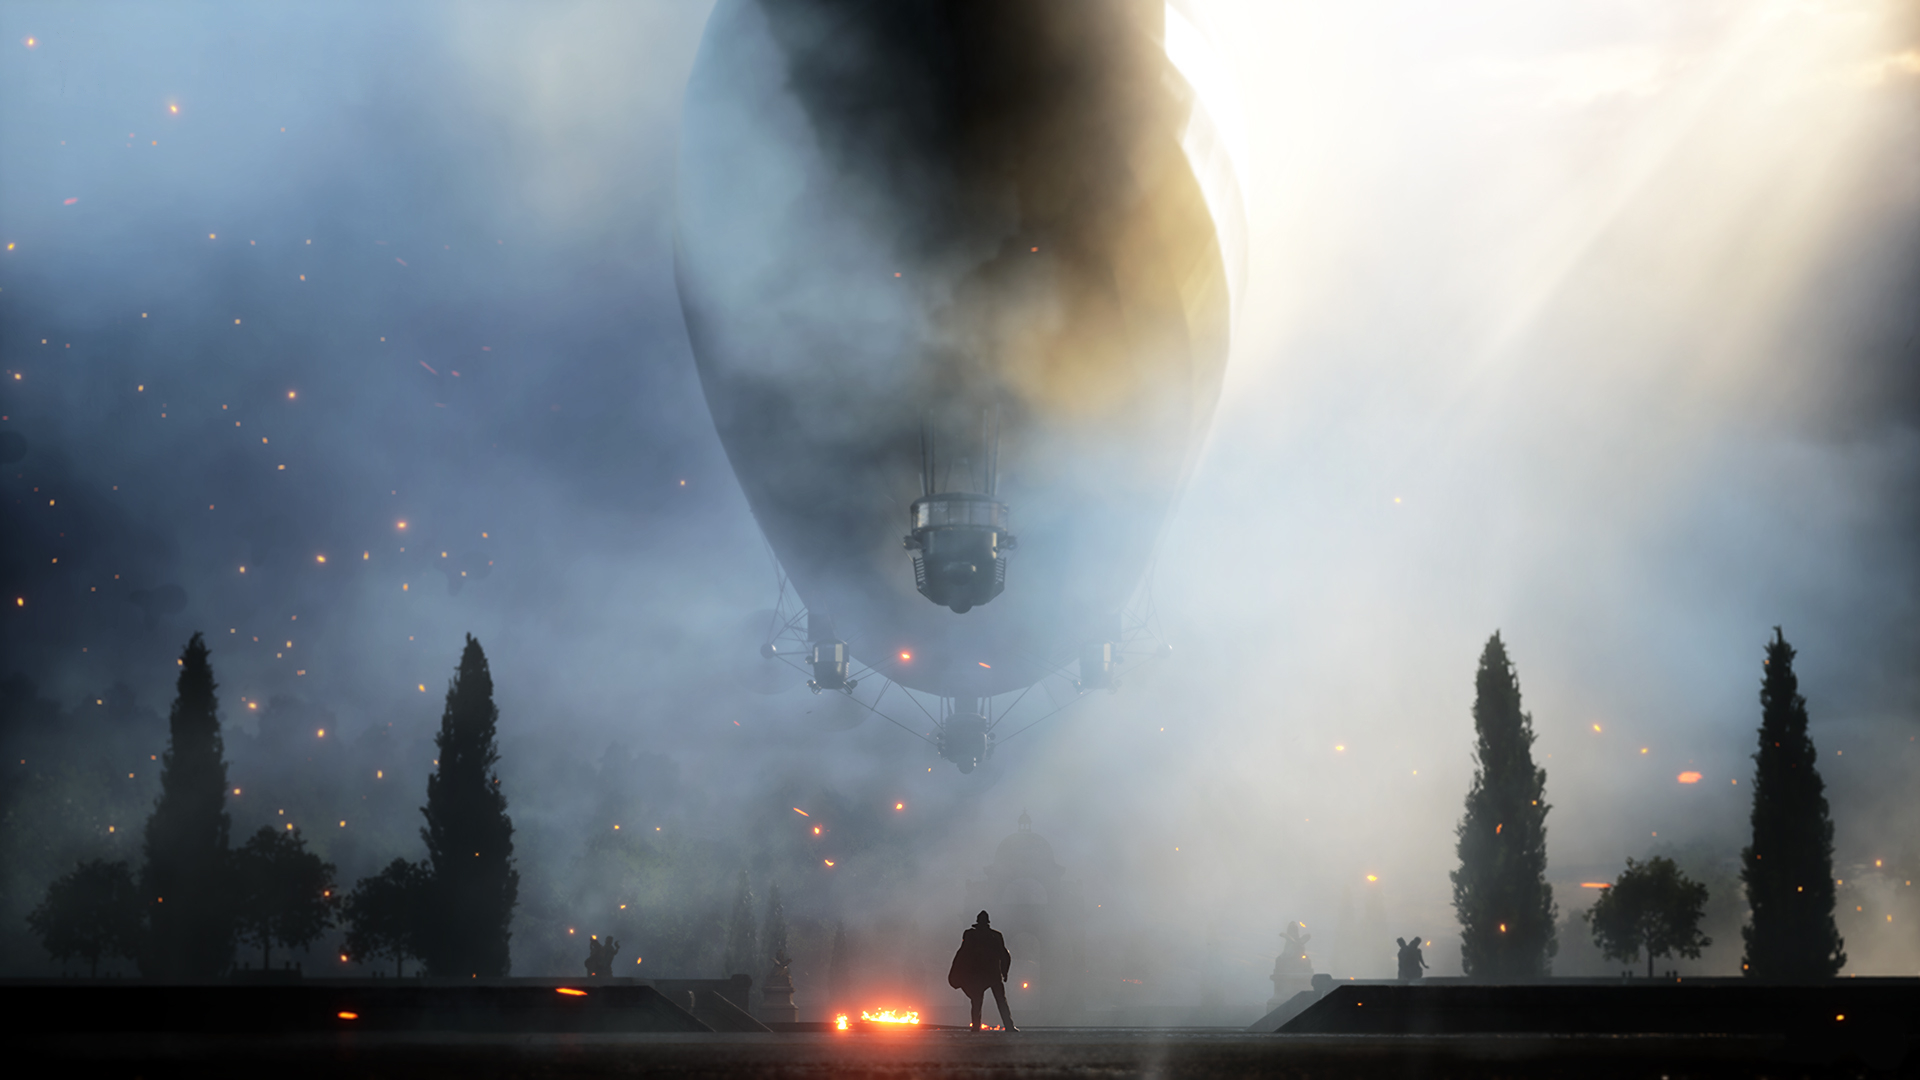 Battlefield 1 Wallpapers Pictures Images